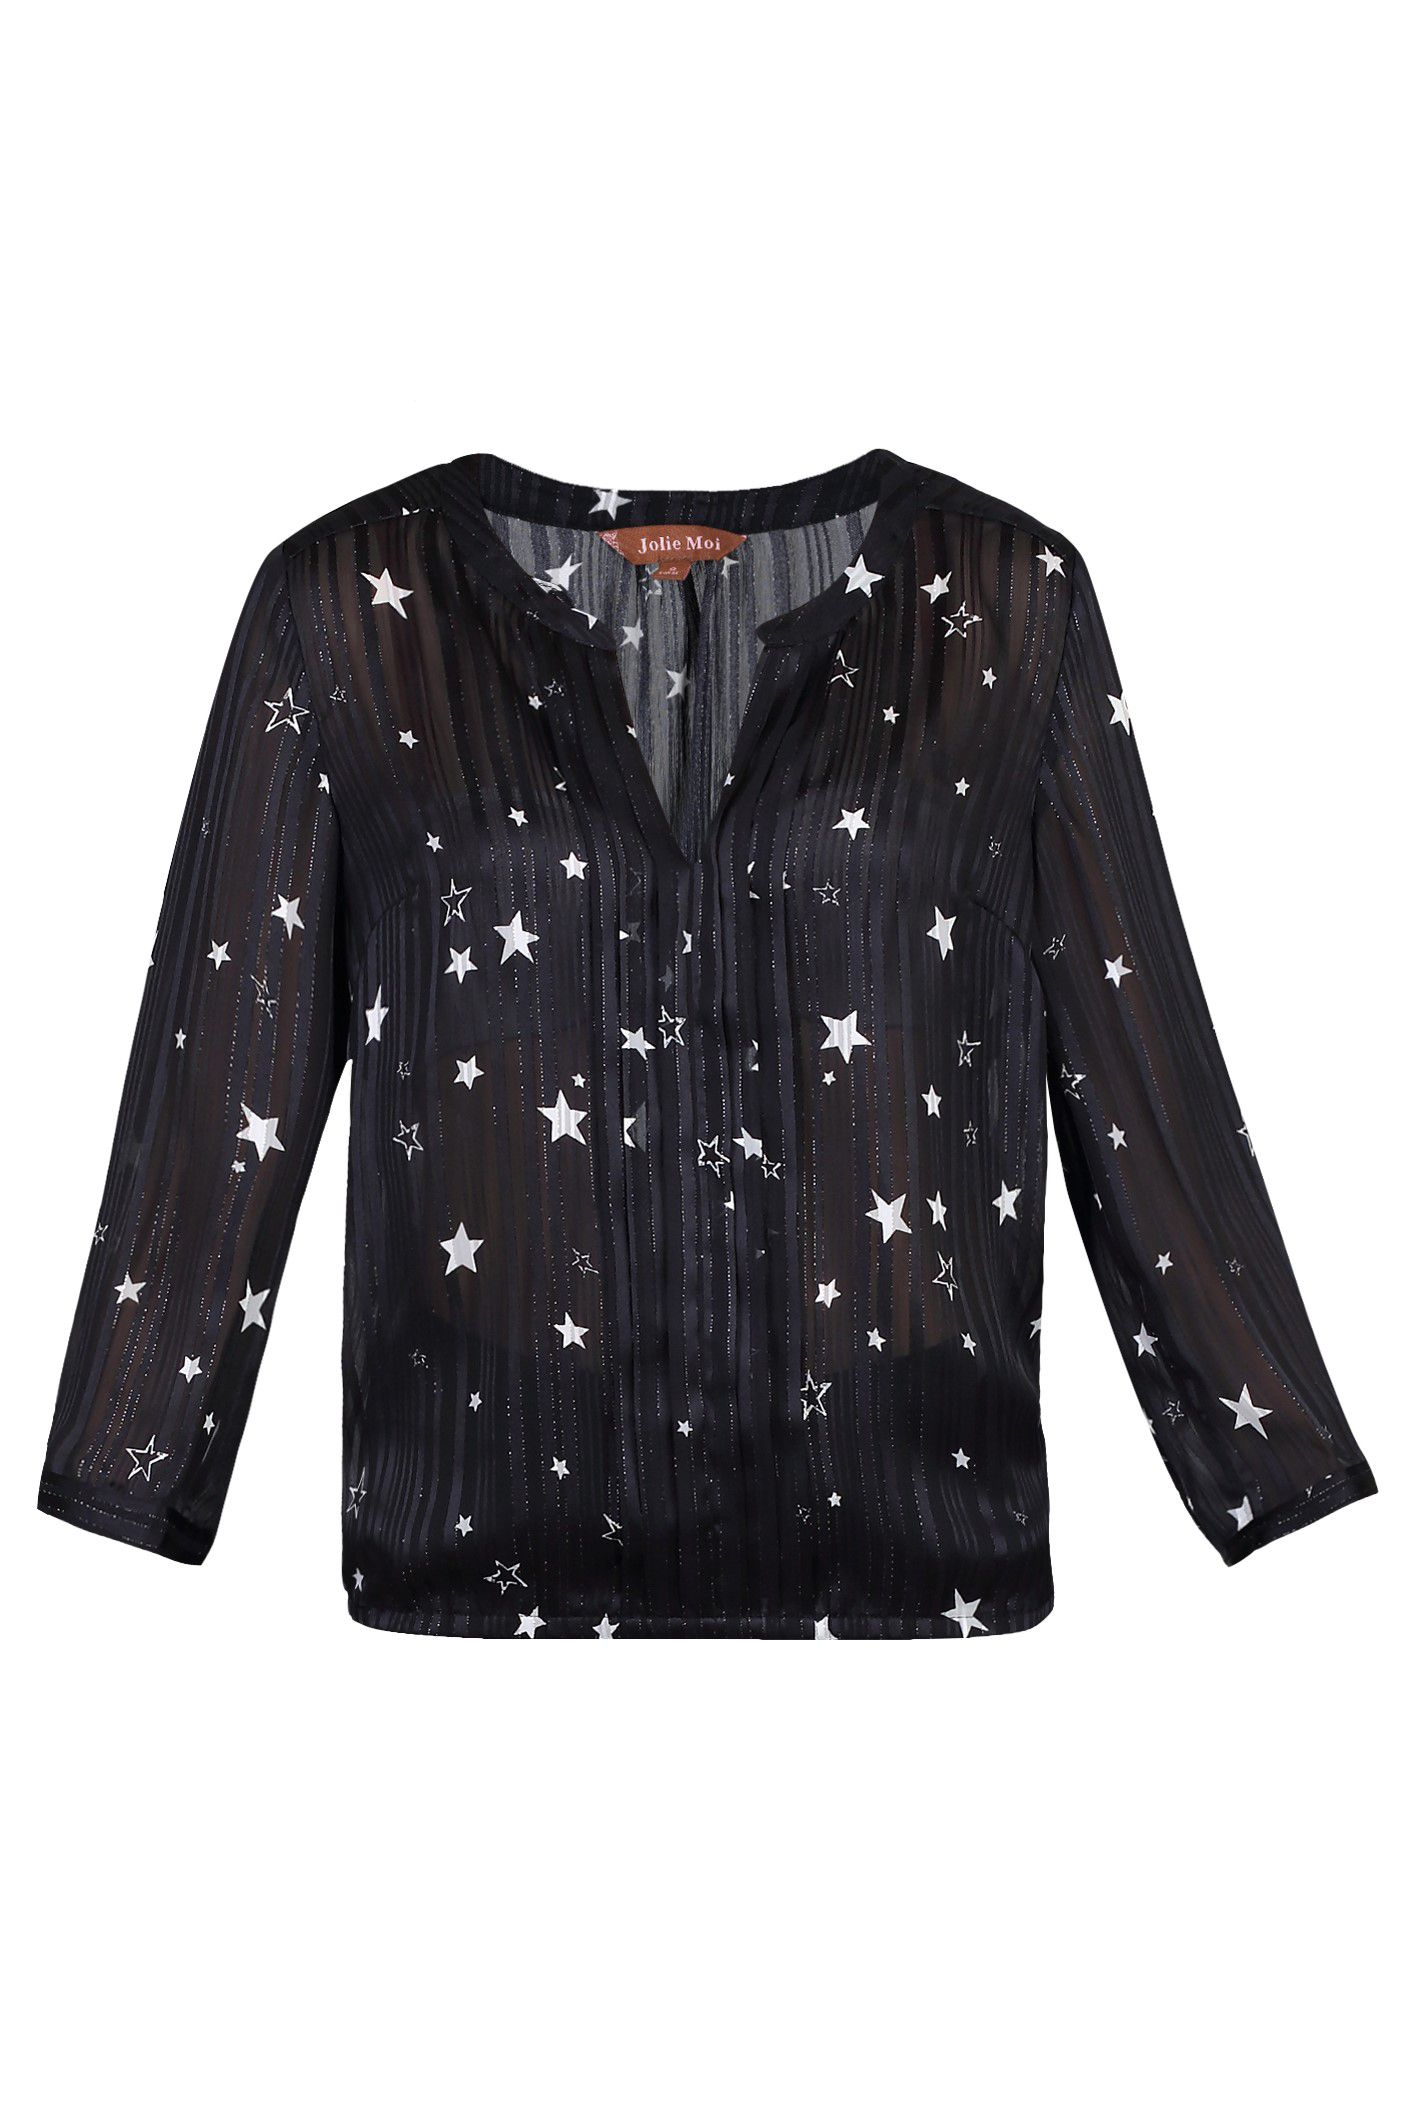 Jolie Moi Star Print Pleated V Neck Blouse, Black